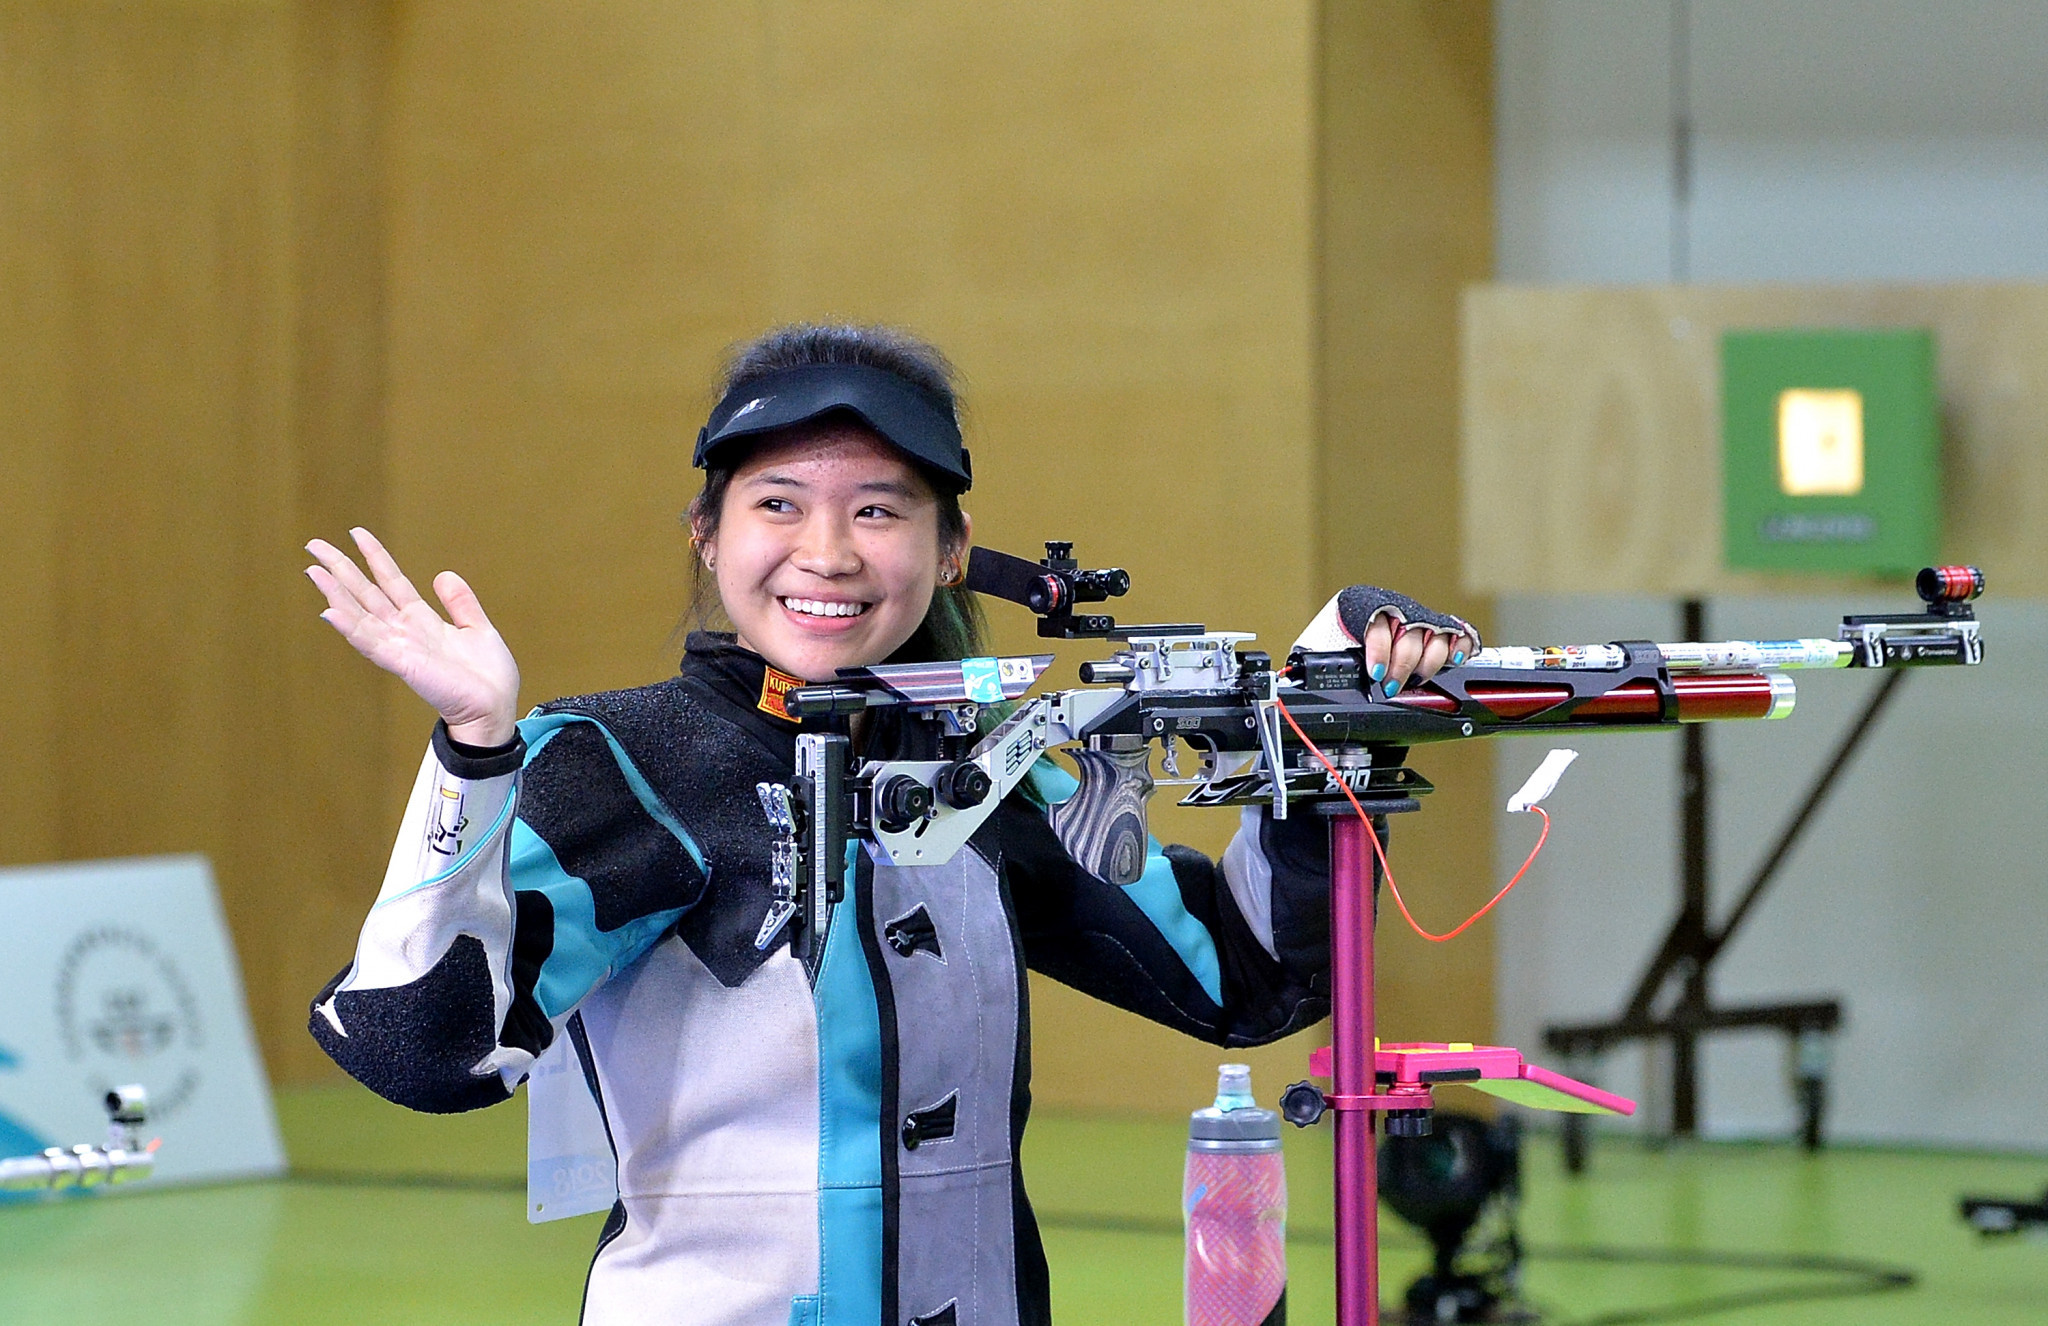 Martina Veloso won a shoot-off in the women's 10m air rifle event ©Getty Images